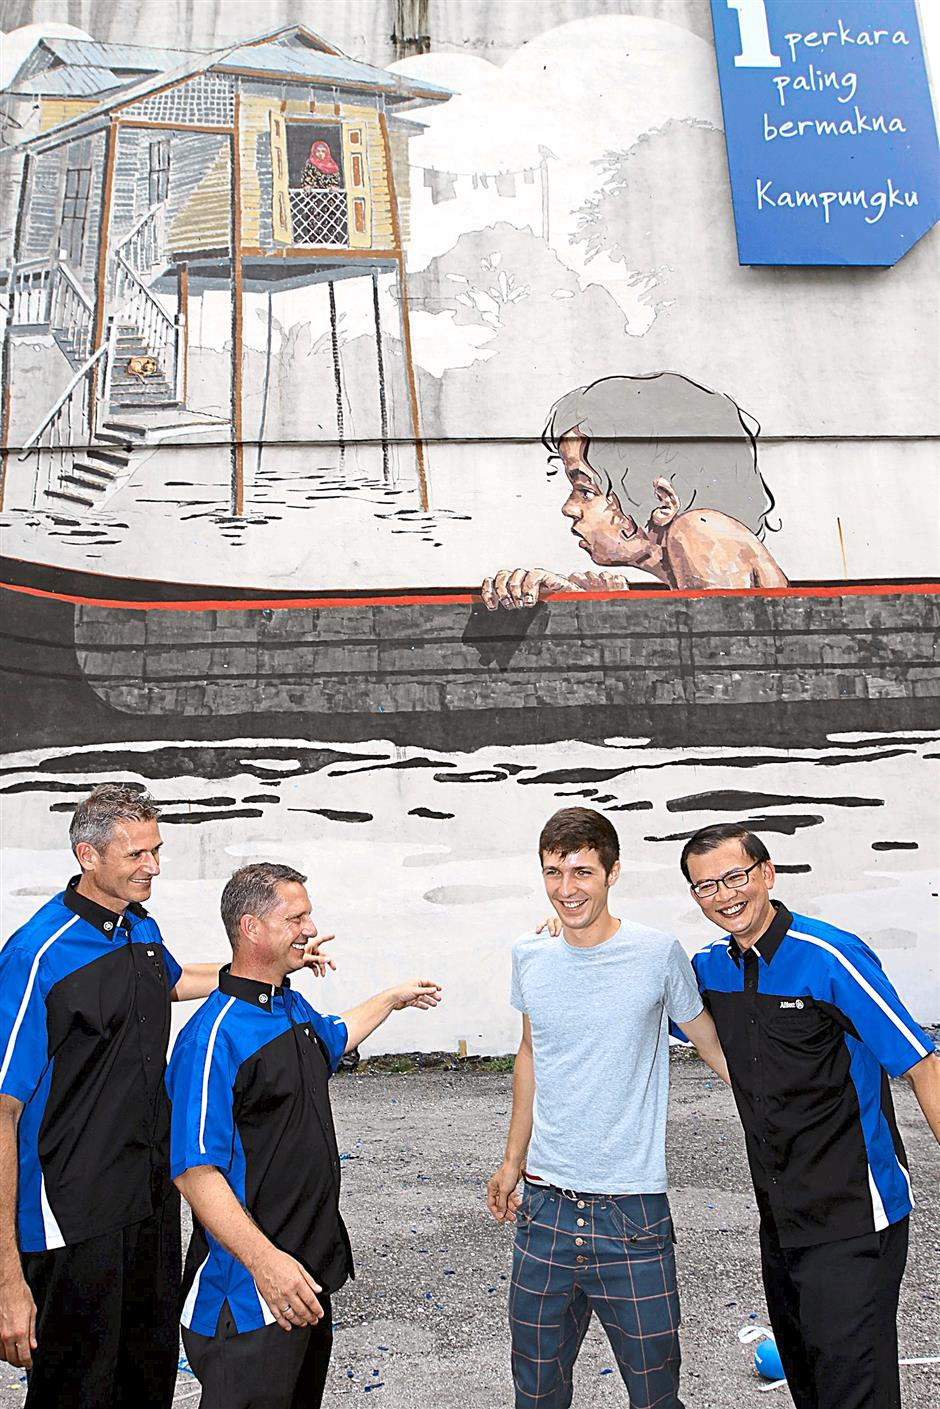 Zacharevic (third from left) with (from left) Allianz General Insurance Company (Malaysia) Berhad chief executive officer Jens Reisch, Allianz General chief sales officer Horst Habbig, and Allianz General chief executive officer Zakri Khir n front of the mural.